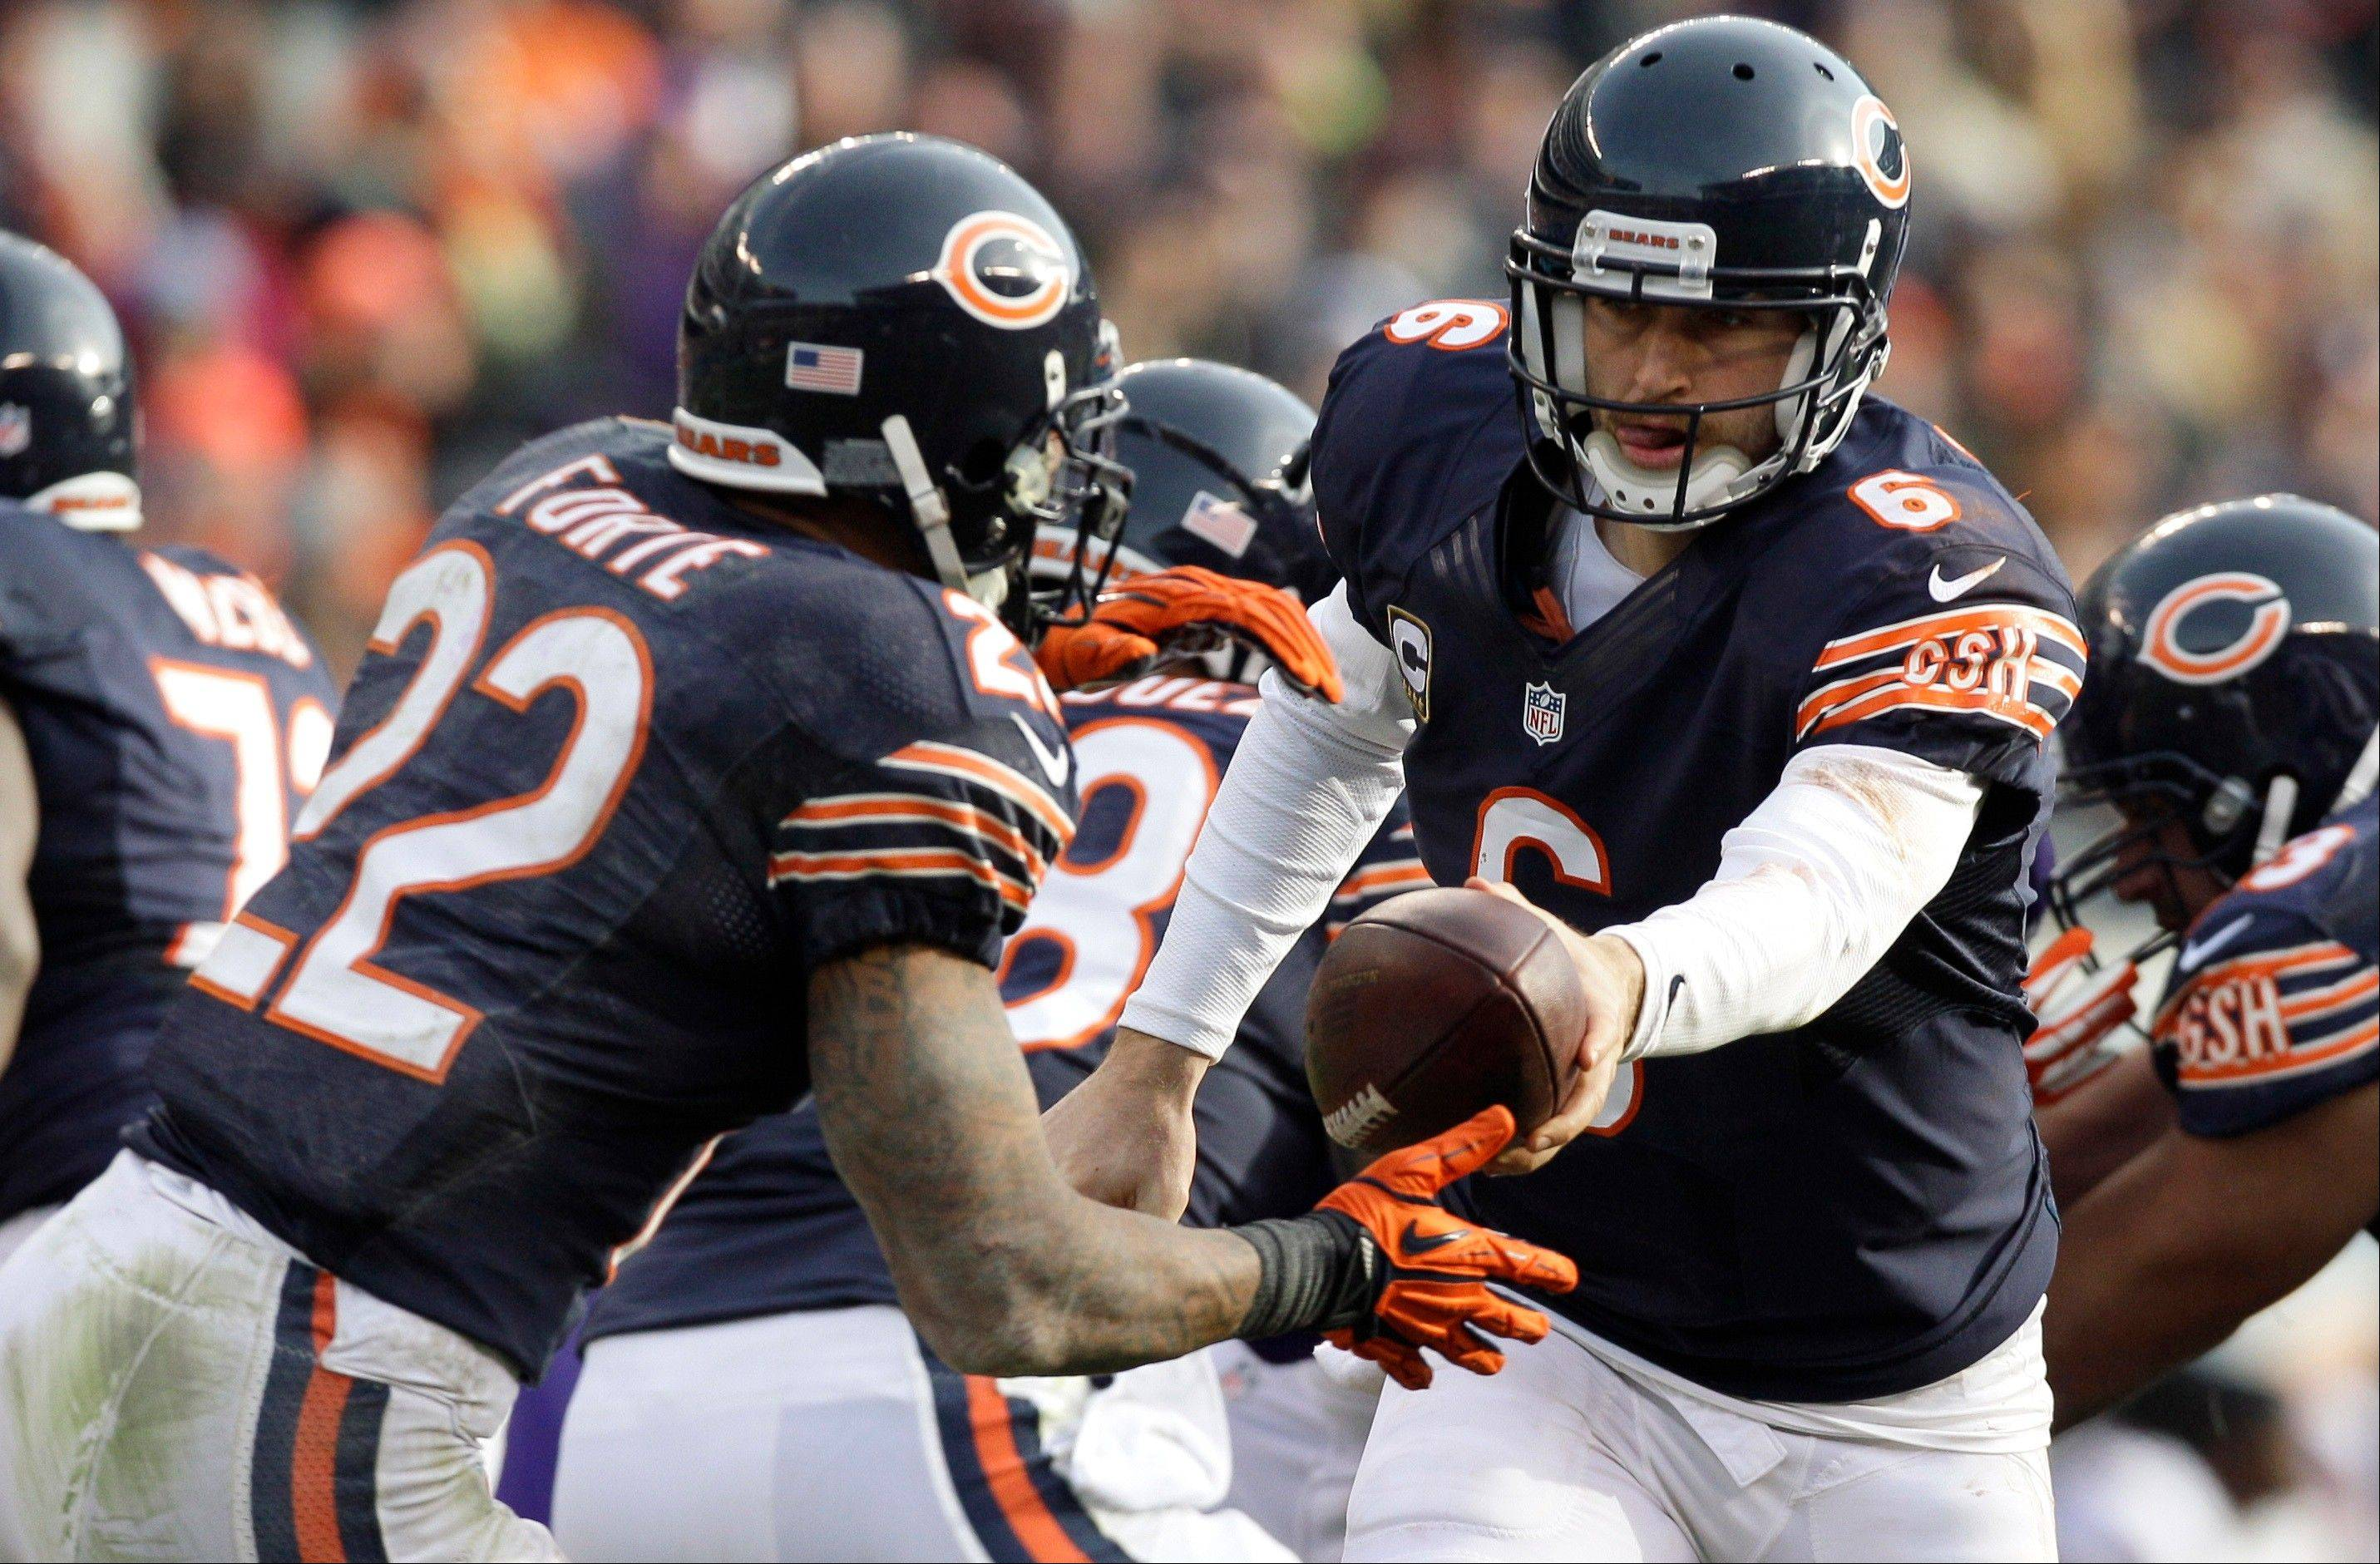 Good news for Bears fans: they should see running back Matt Forte take quite a few handoffs from quarterback Jay Cutler on Sunday against the Seahawks at Soldier Field. Forte's ankle injury has improved and he expects to play.